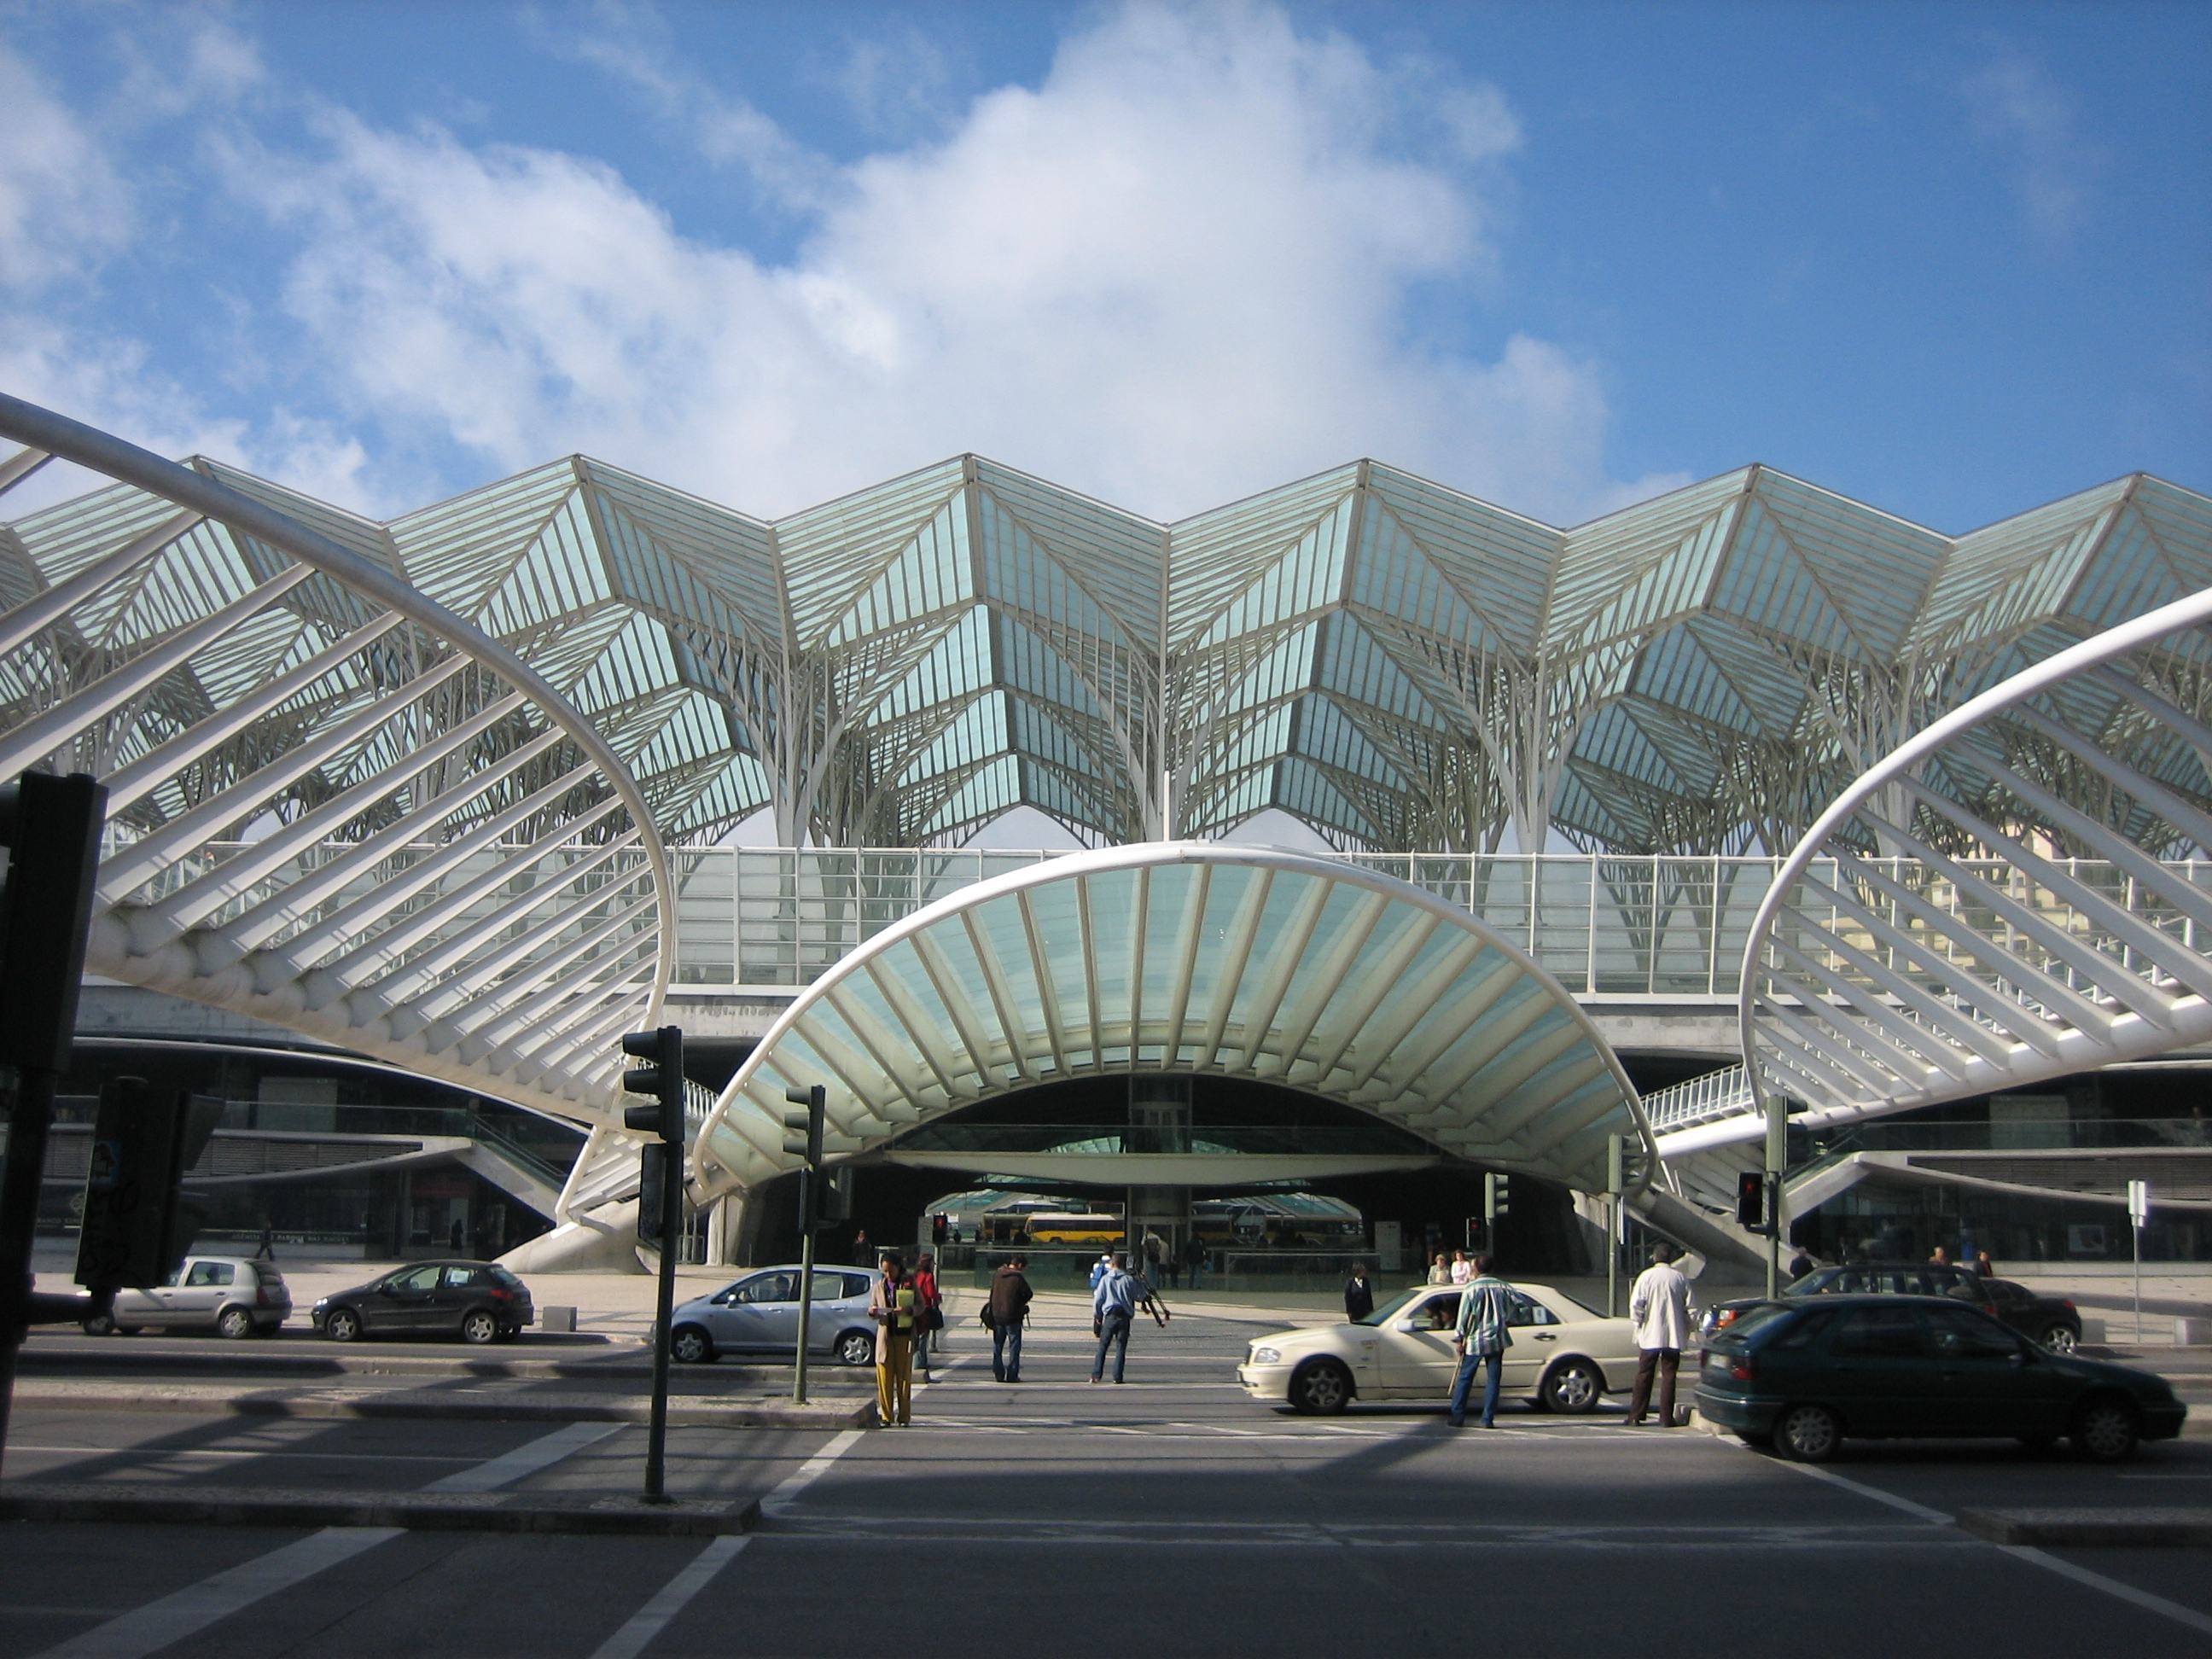 Station du Oriente, Portugal